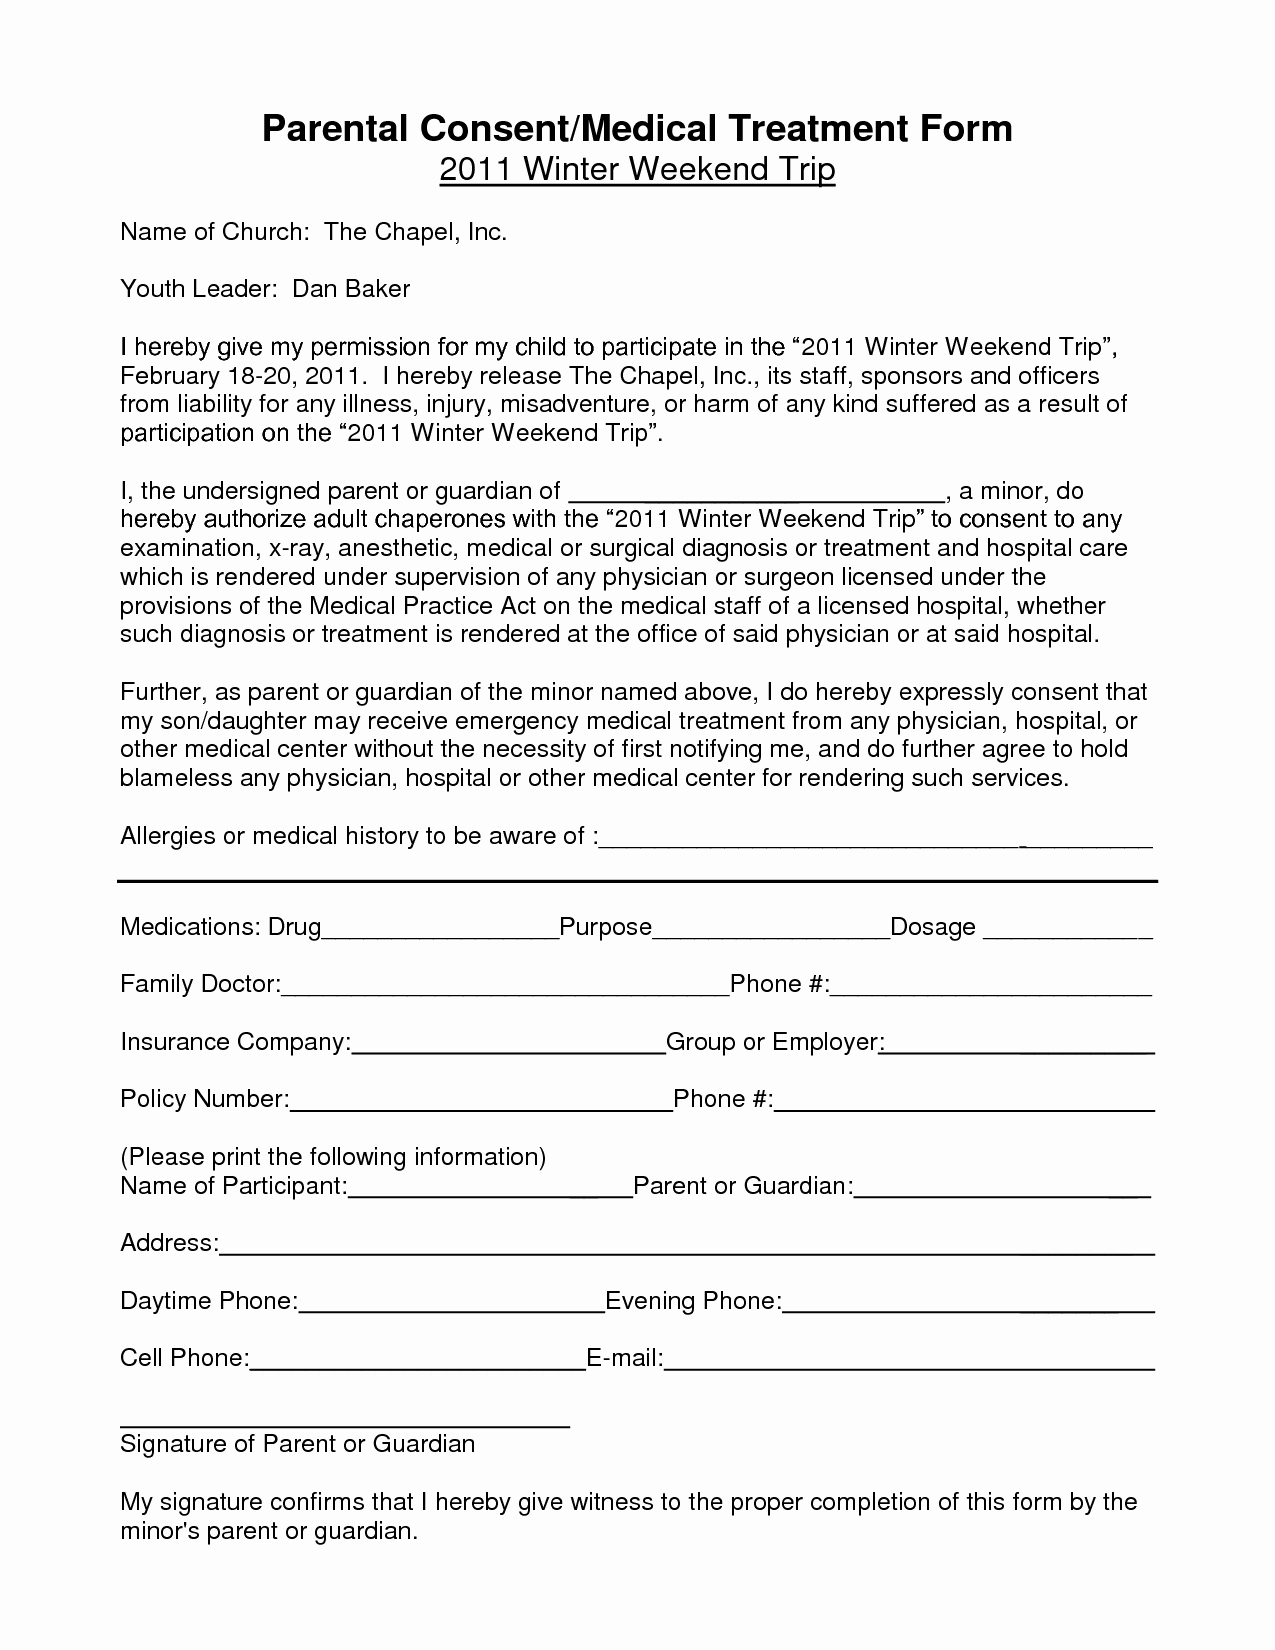 Waiver Letter Template - Medical Waiver Template Lovely Notarized Medical Consent form for